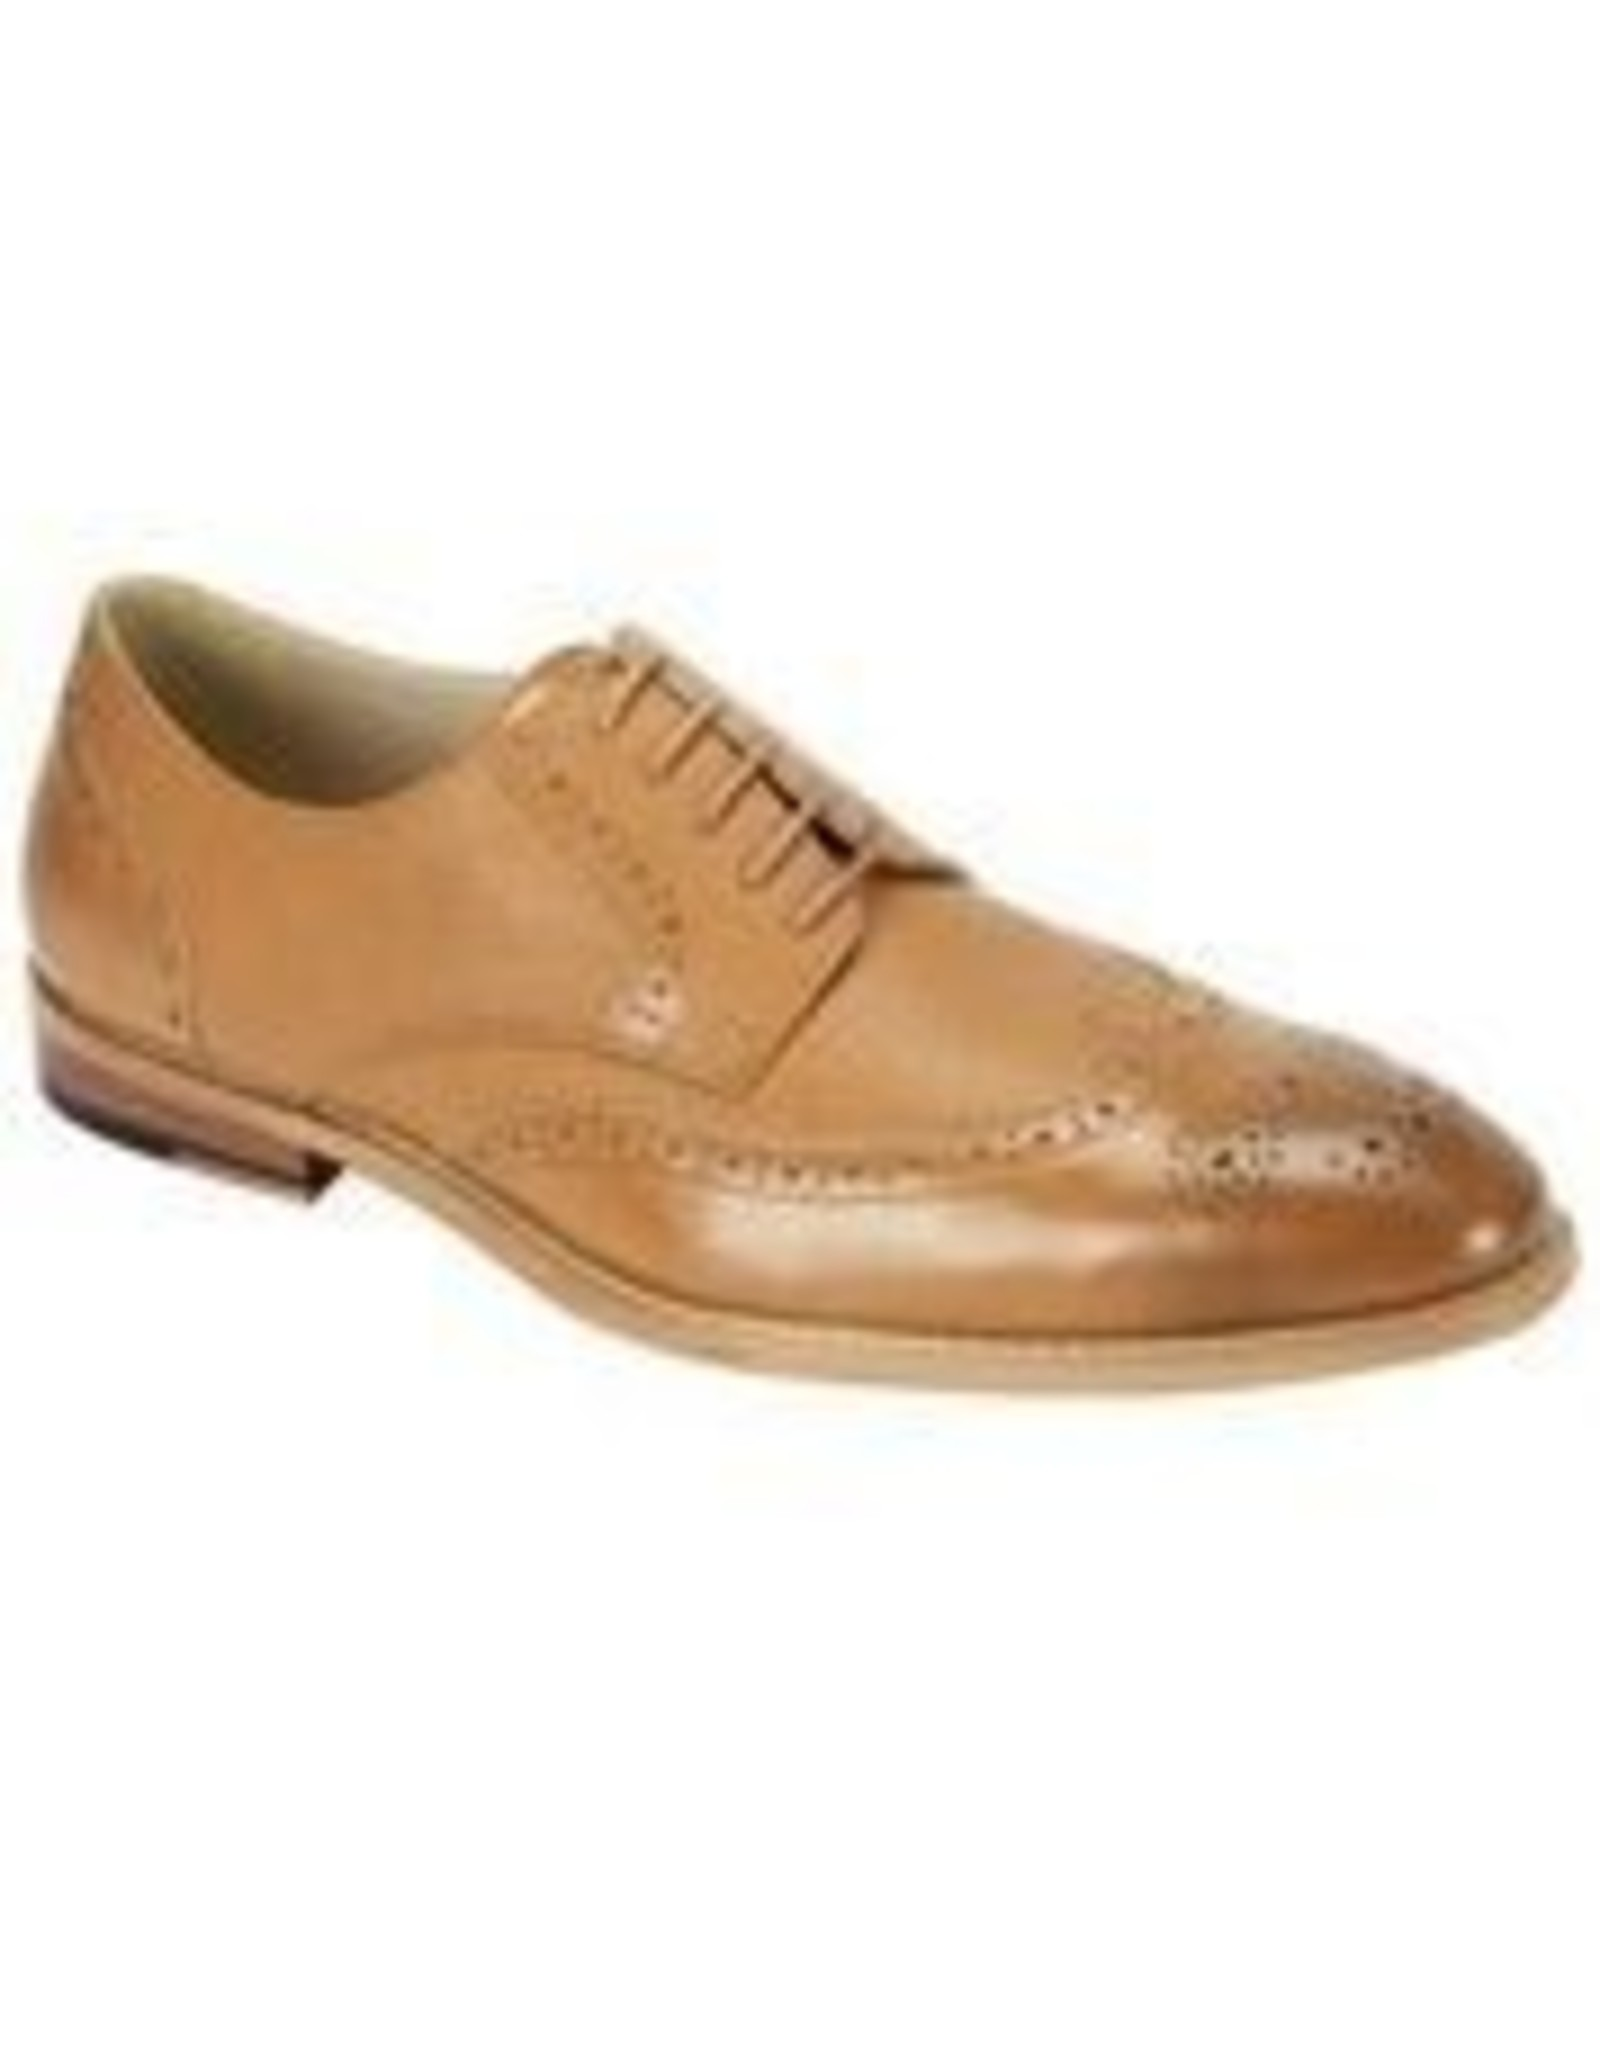 Antonio Cerrelli Antonio Cerrelli 6836 Dress Shoe - Latte